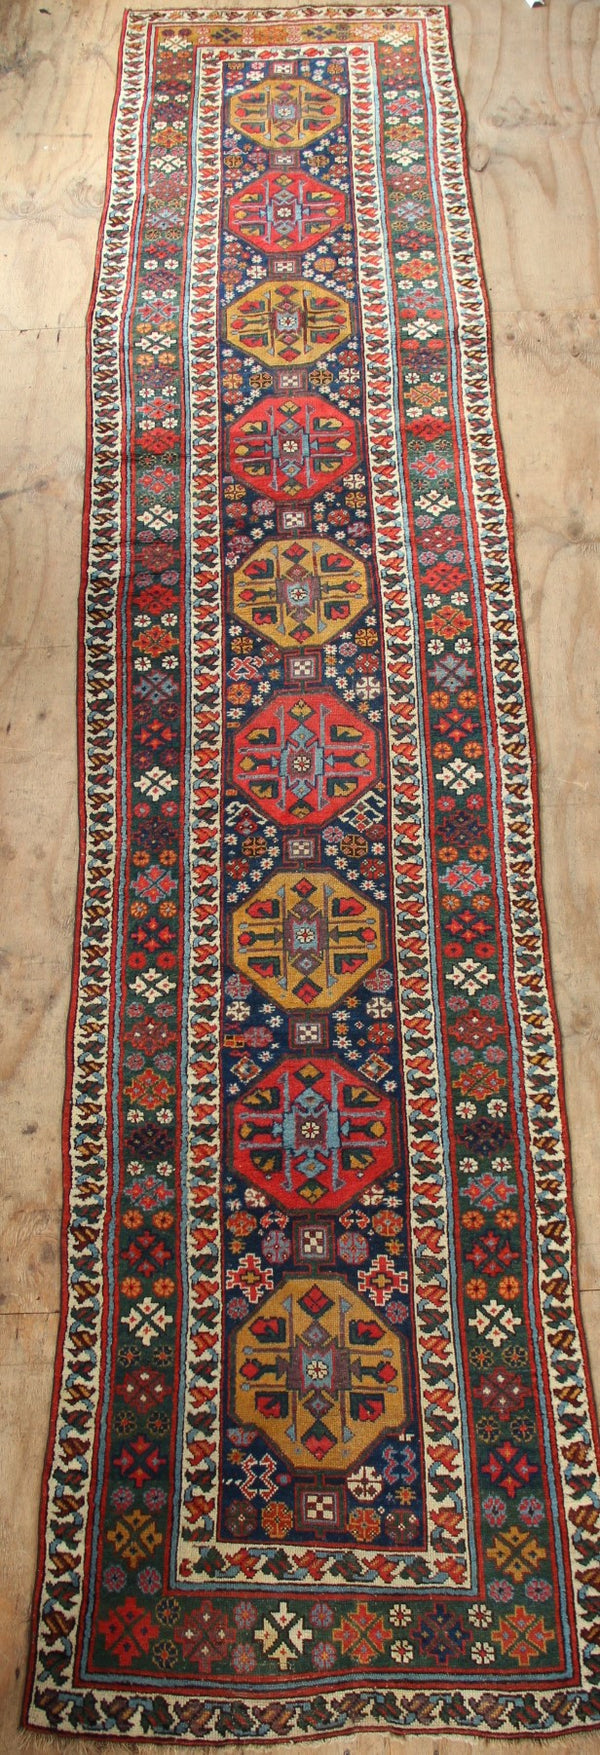 "Late 19th century Kurdish runner 3'3"" x 14'8"" / 100 x 448cm"